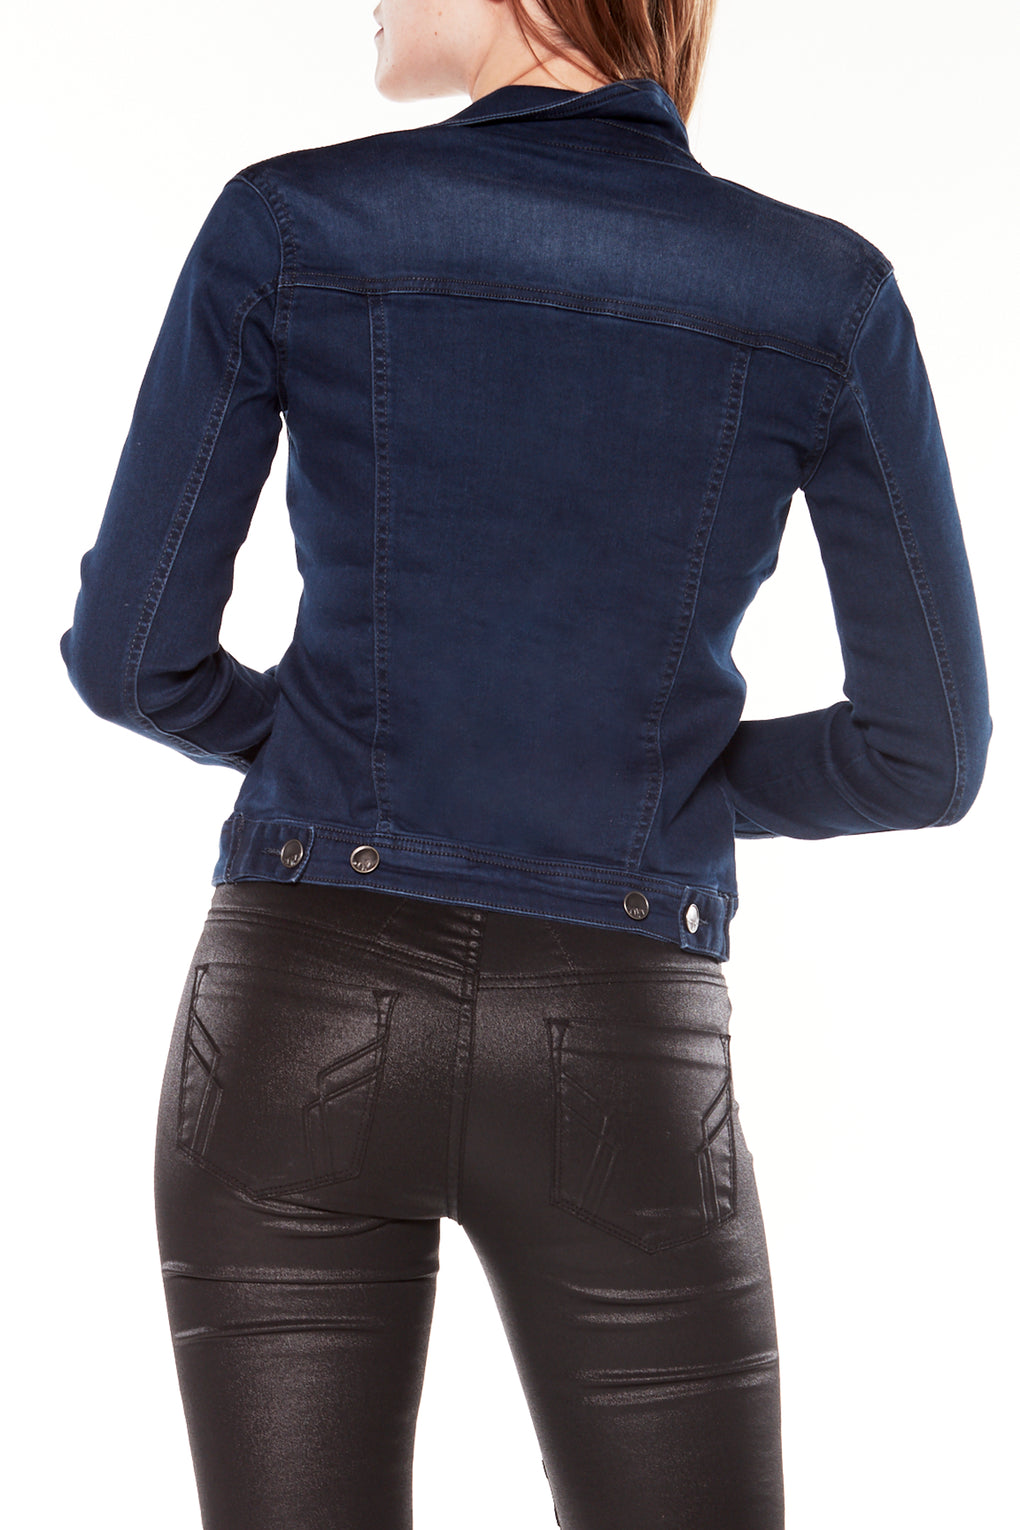 FARRAH - Denim Trucker Jacket (FX-FARRAH-KML)